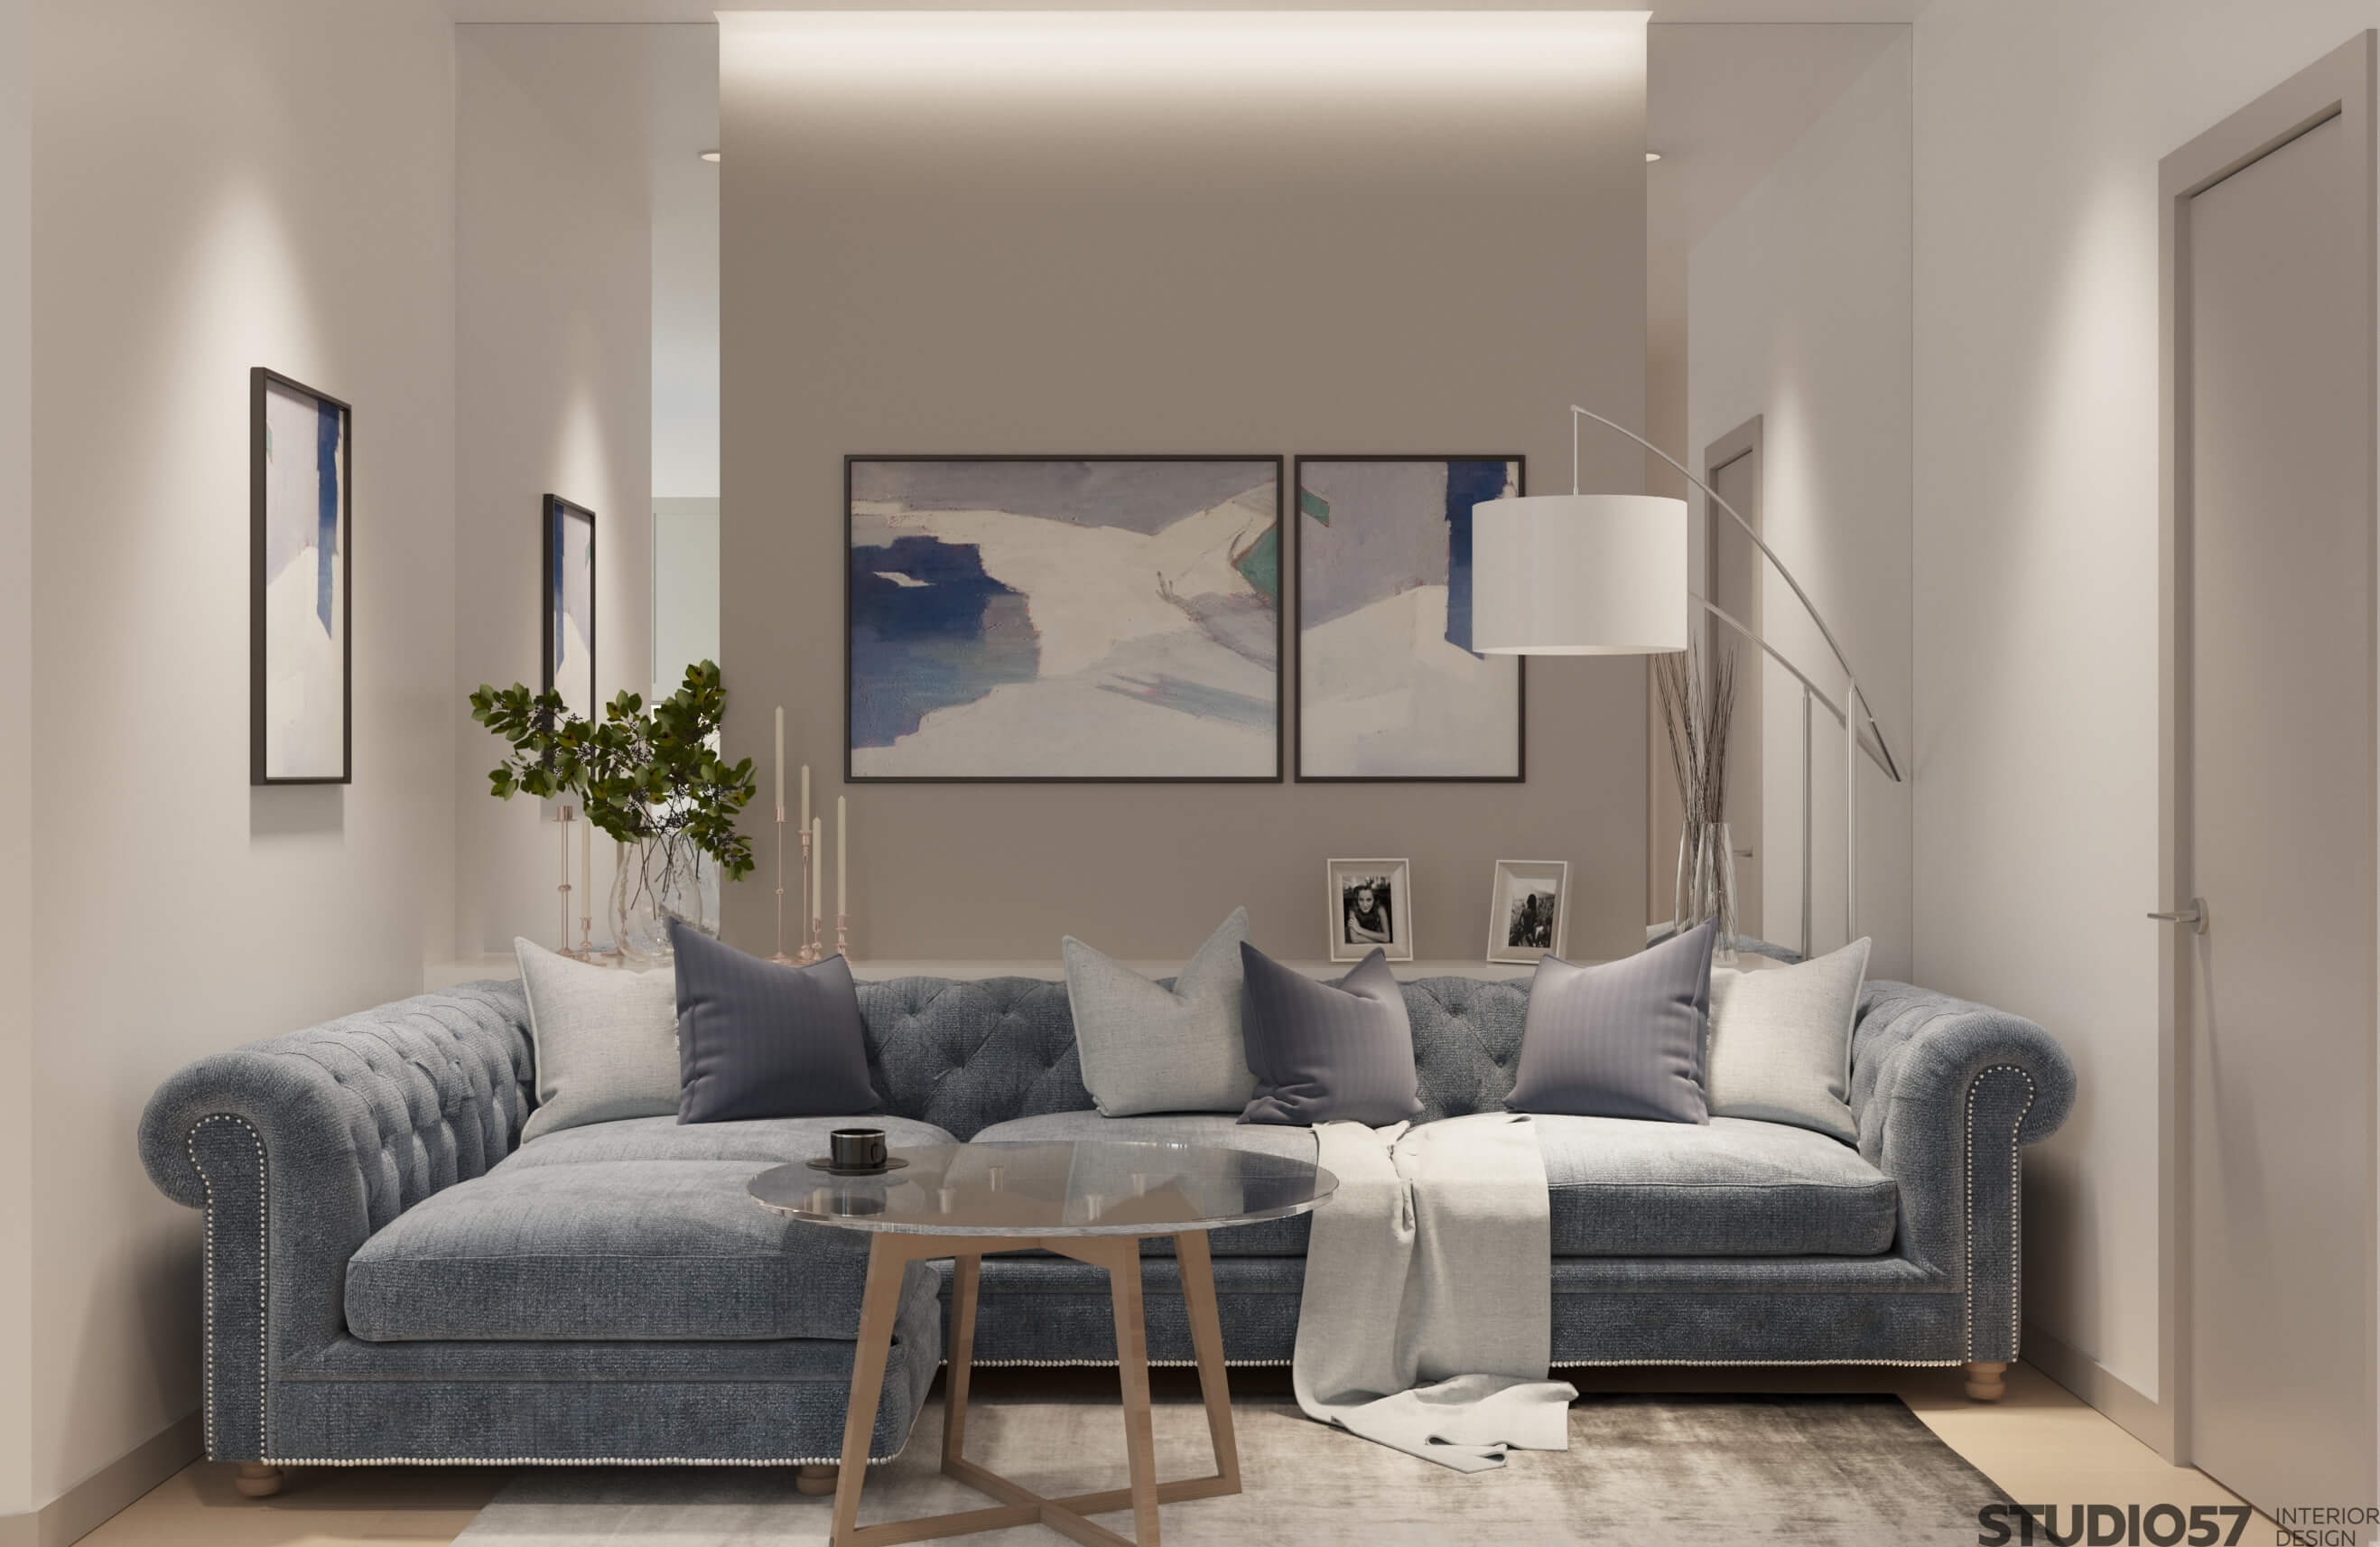 How to combine white and blue in the interior